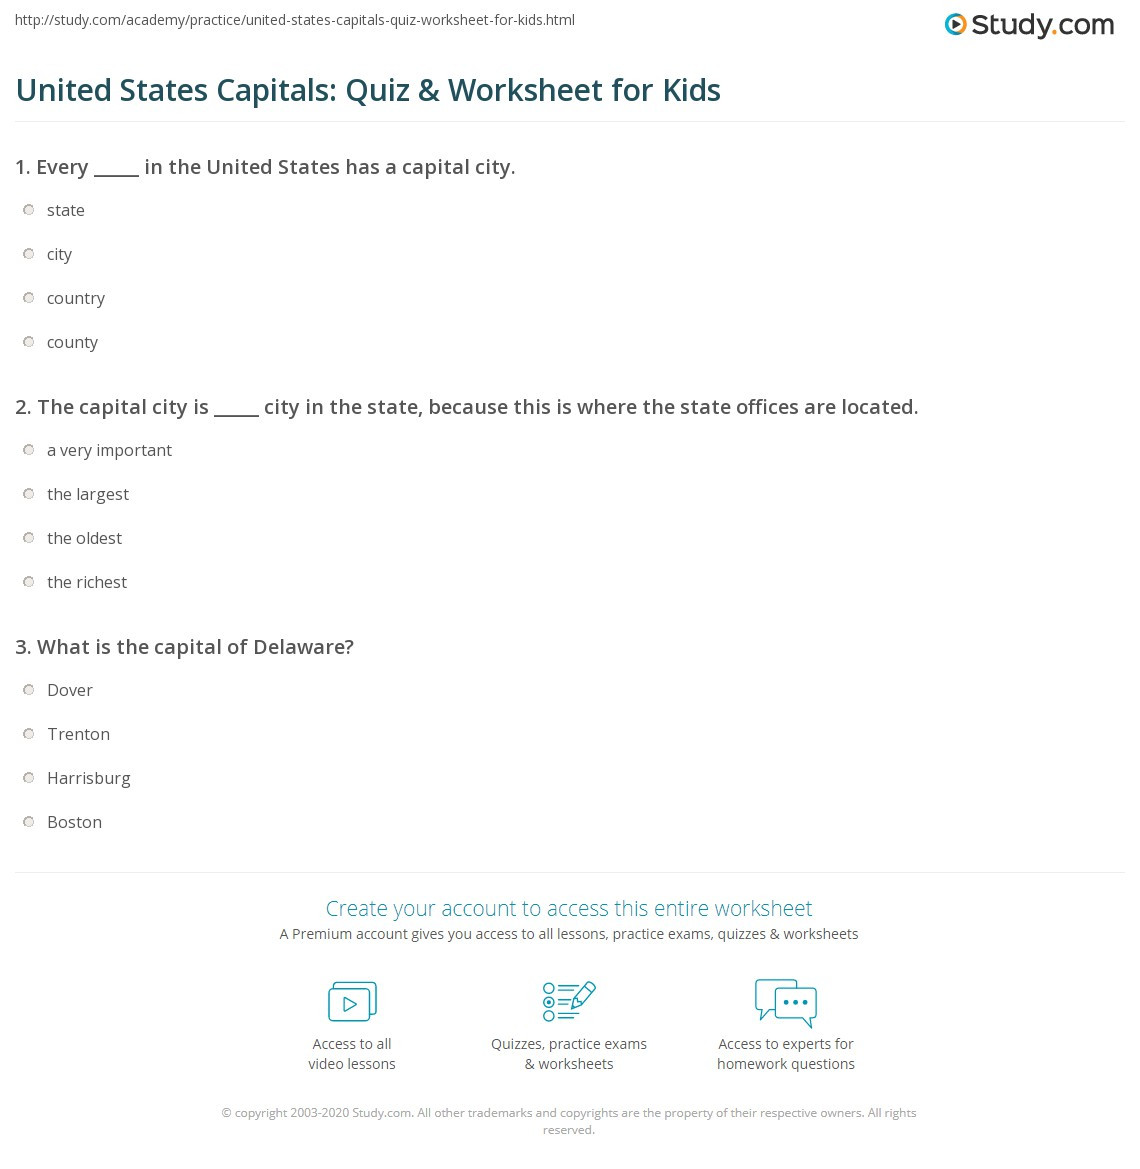 United States Capitals Quiz Printable United States Capitals Quiz & Worksheet for Kids